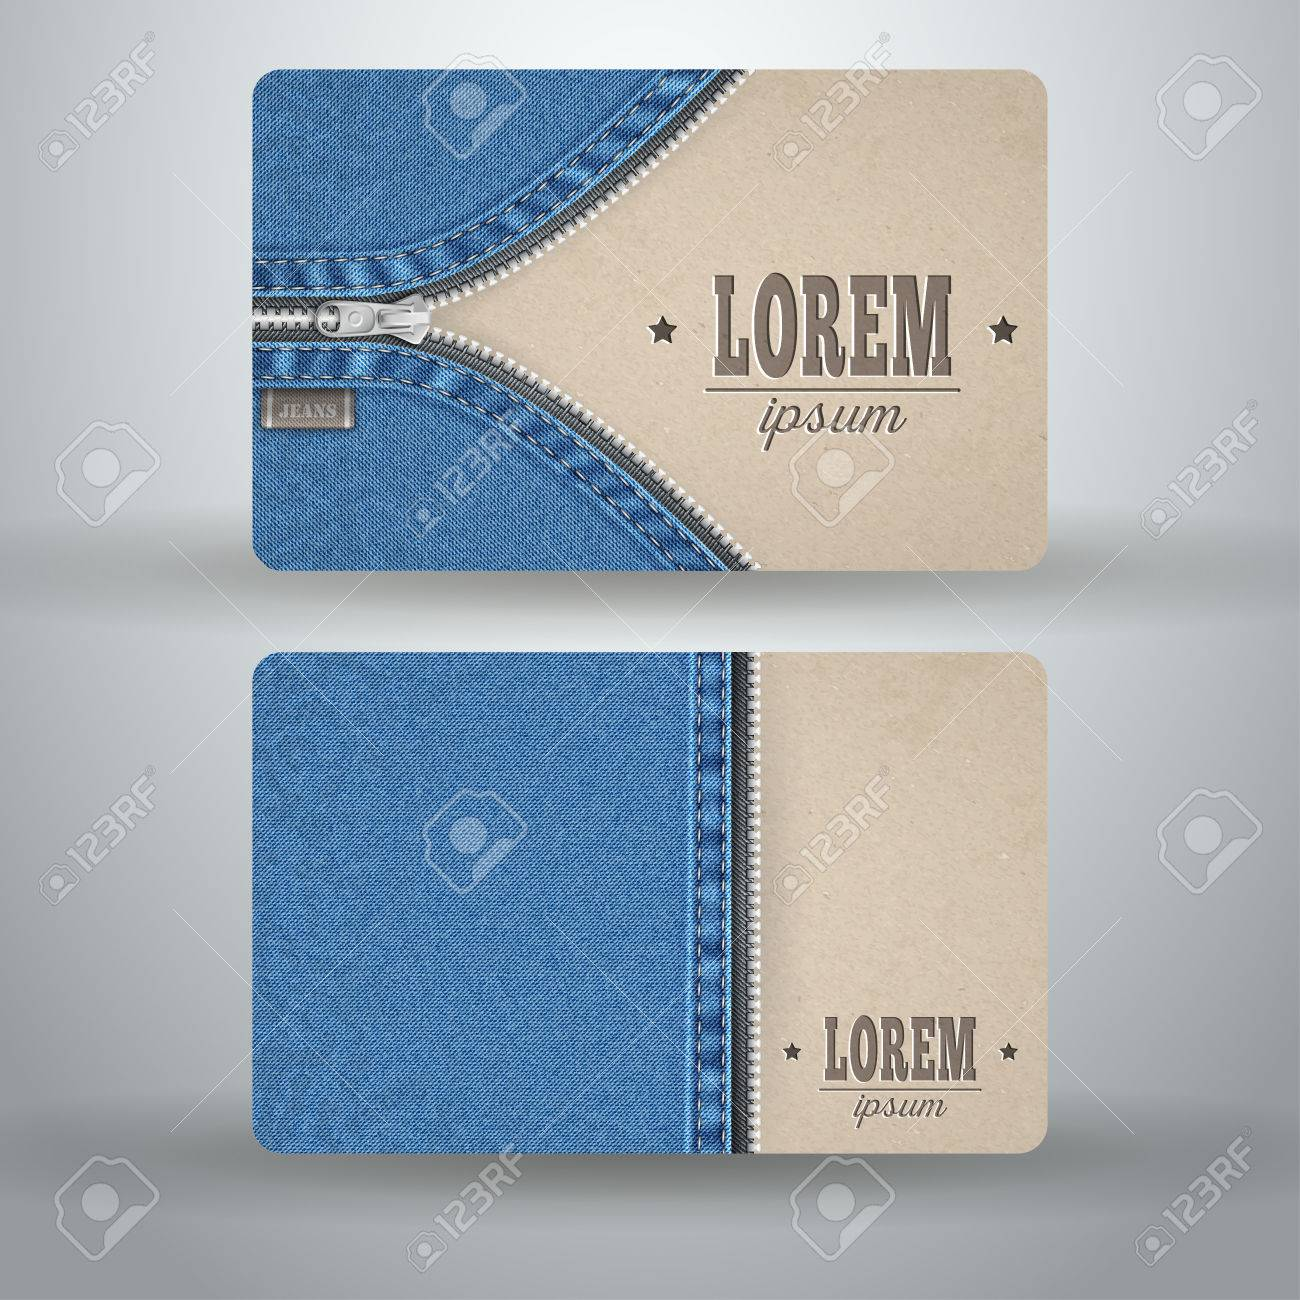 Business Card Template From Cardboard And Denim Royalty Free ...